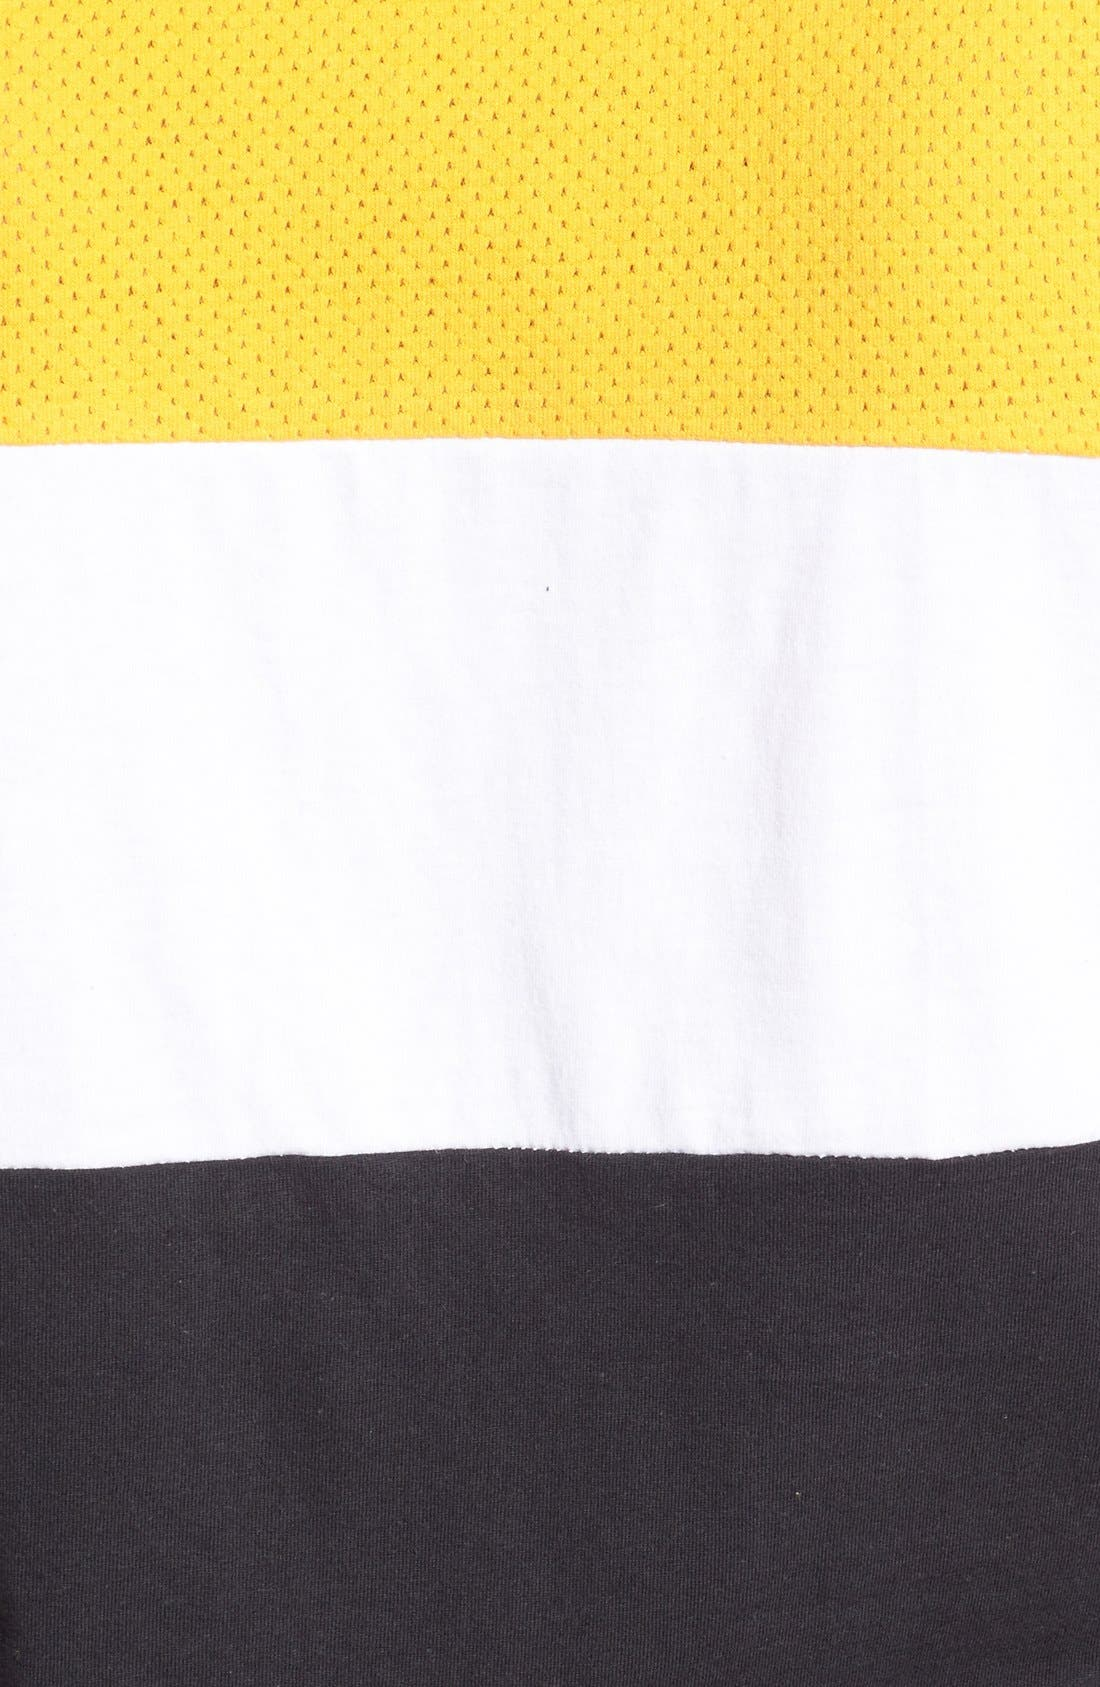 Alternate Image 3  - Mitchell & Ness 'Boston Bruins - Home Stand' Tank Top